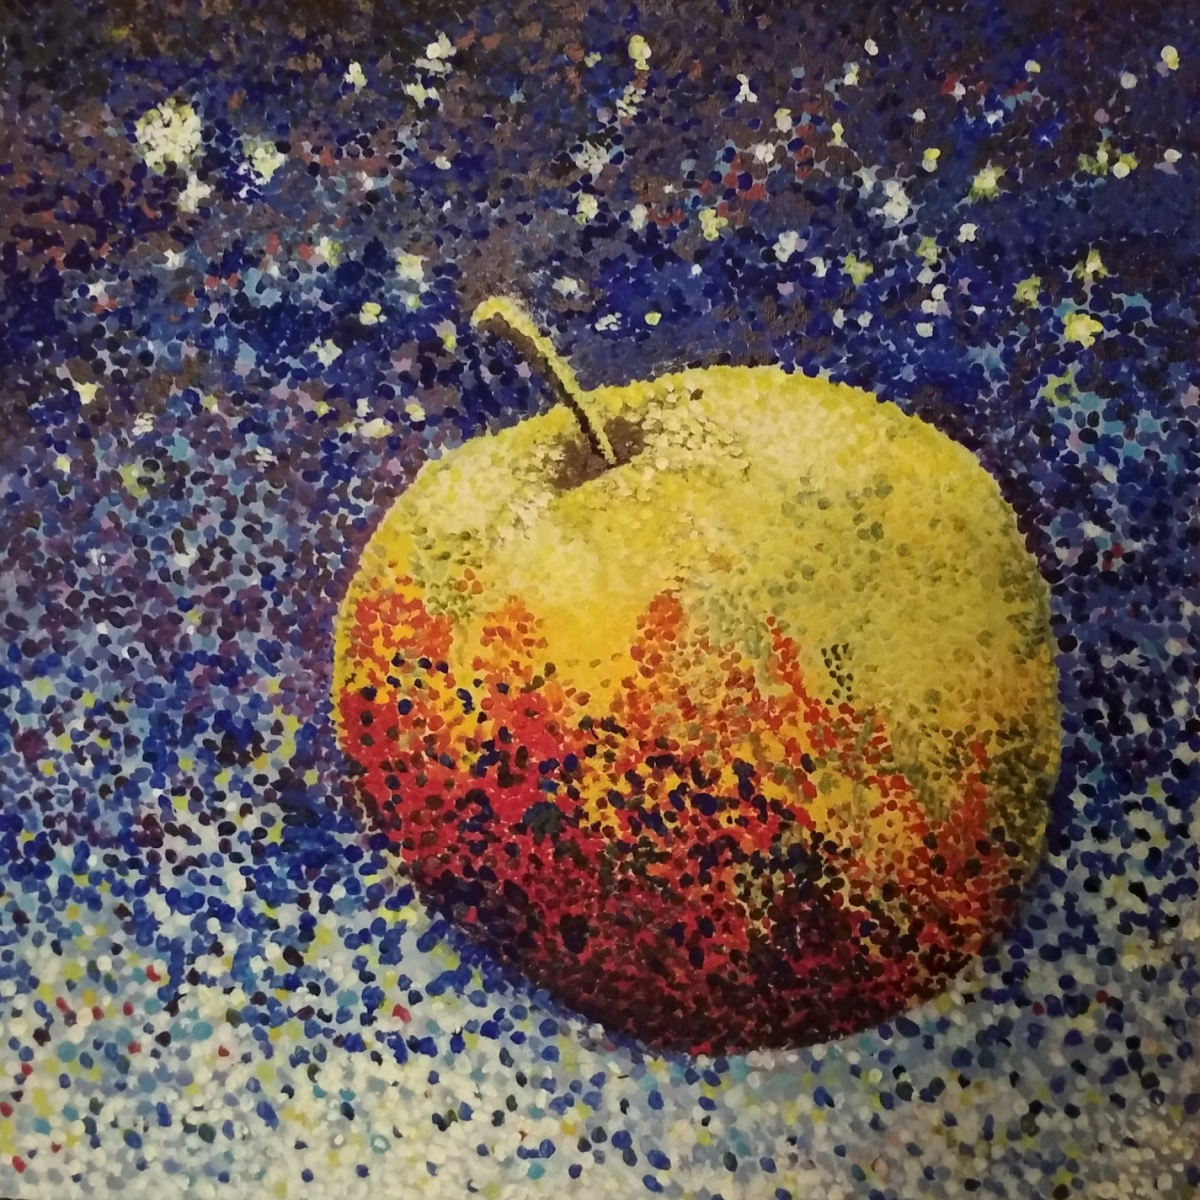 An apple falling through space